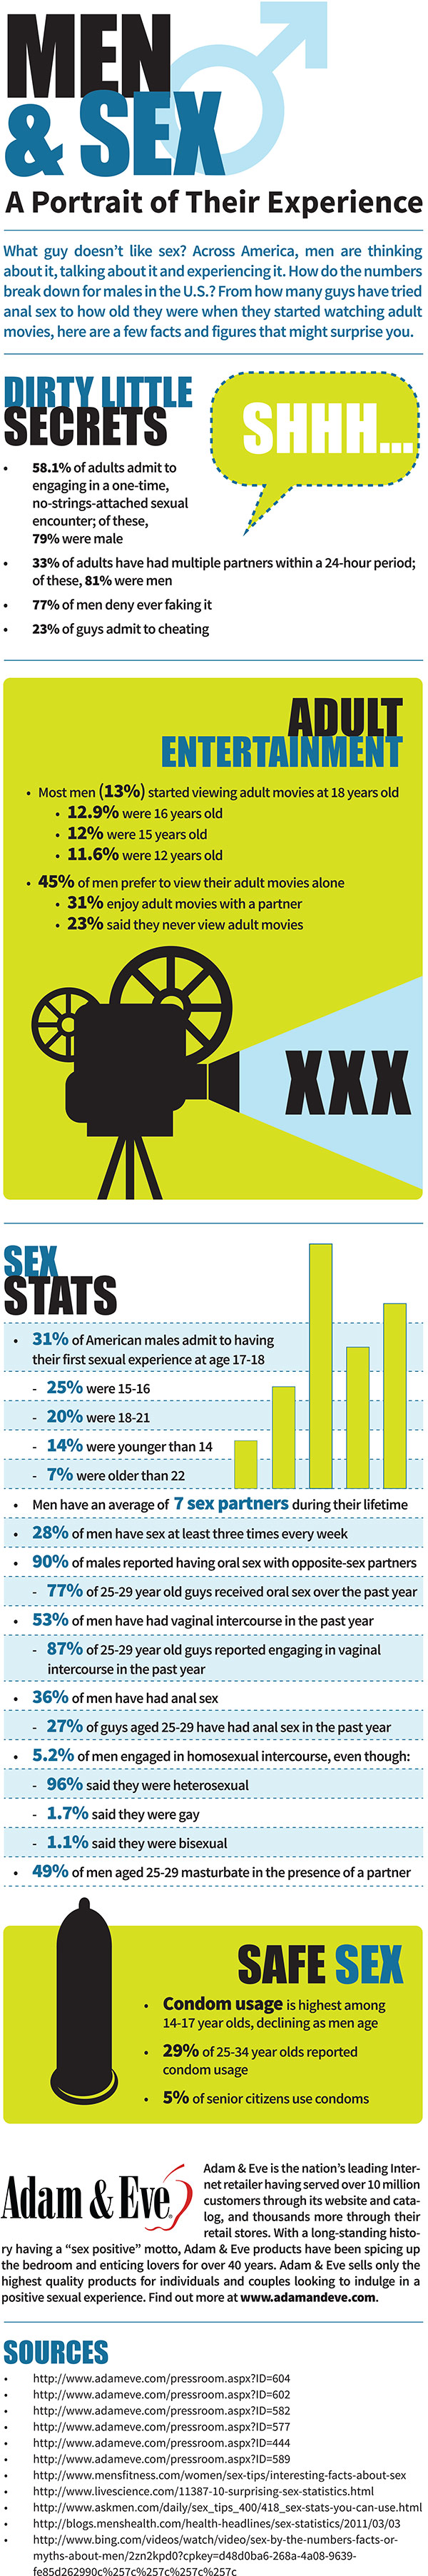 Men and Sex Infographic